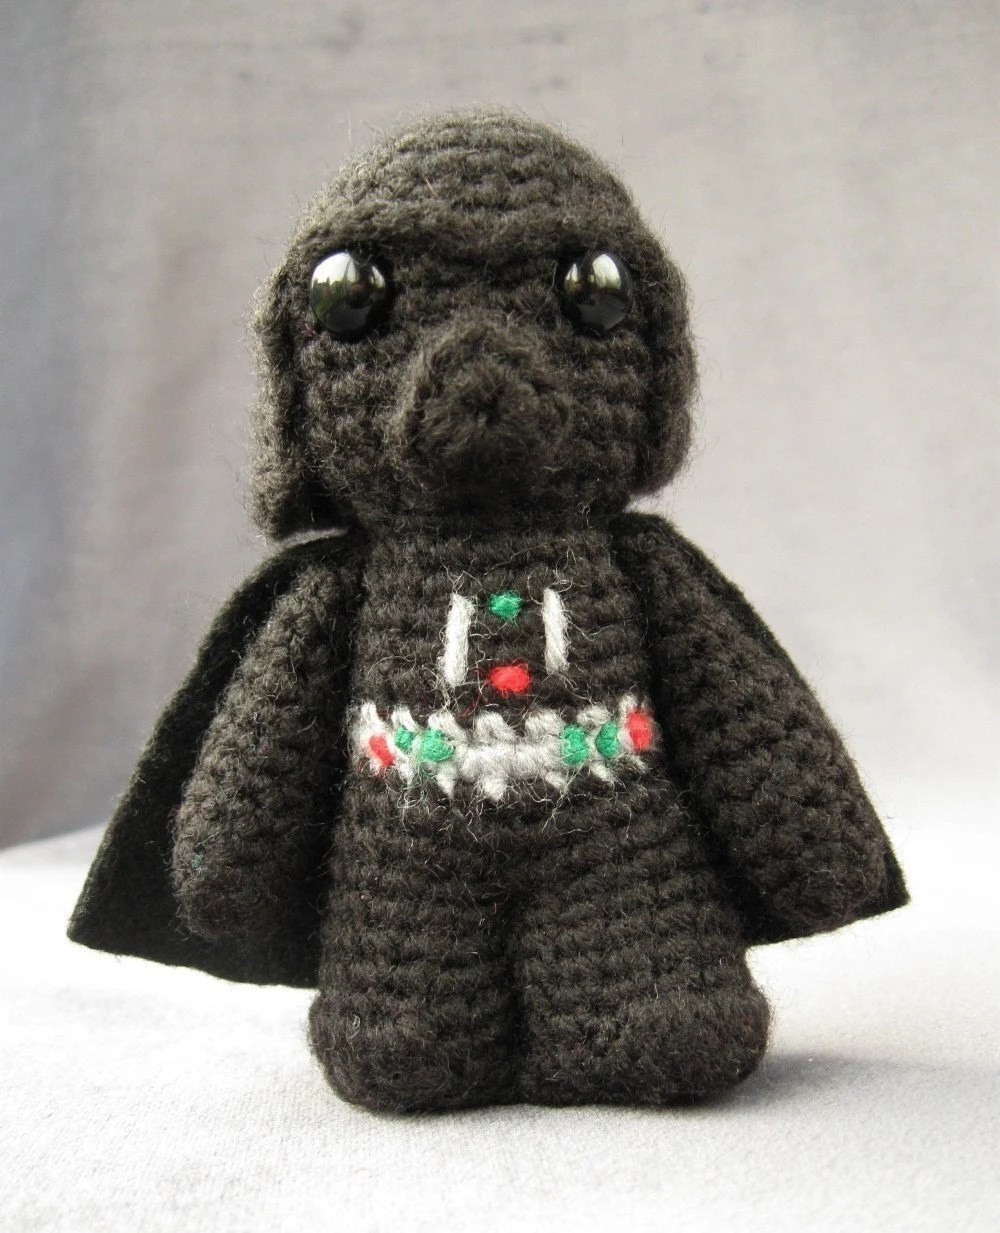 PATTERN for Darth Vader - Star Wars Mini Amigurumi